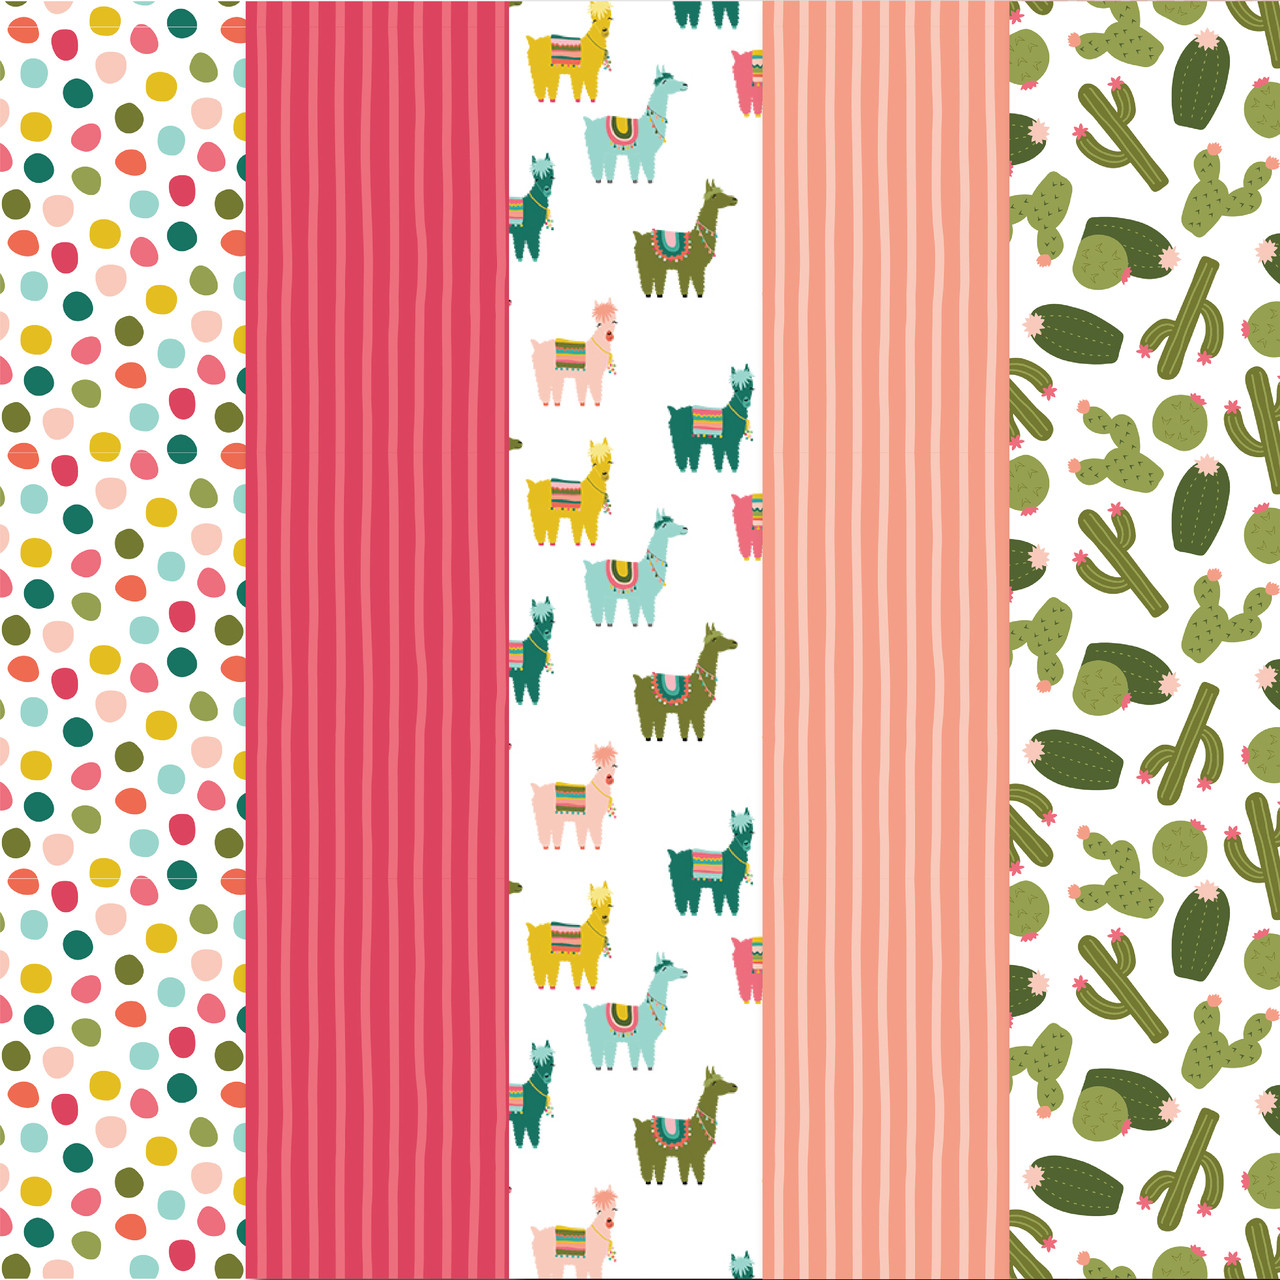 photo about Printable Pattern Paper called Cactus and Llama Practice Paper Pack